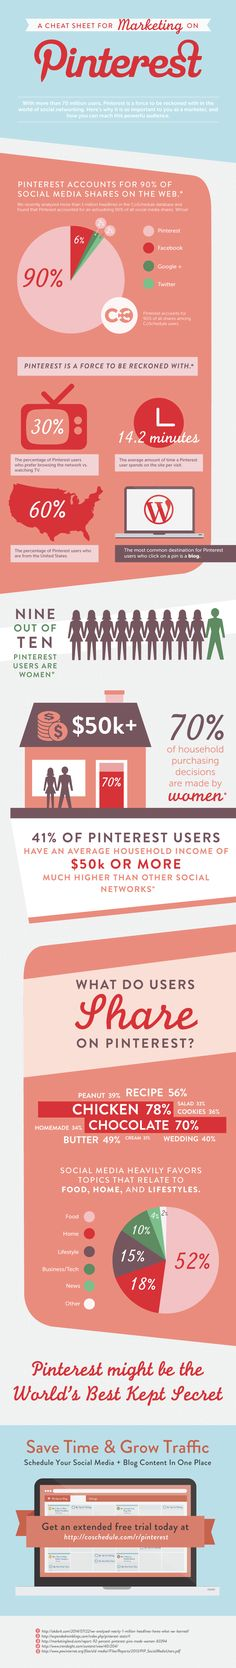 A Cheat Sheet For Marketing On Pinterest [Infographic] #Pinterest accounts for 90% of social media shares on the web! AMAZING!